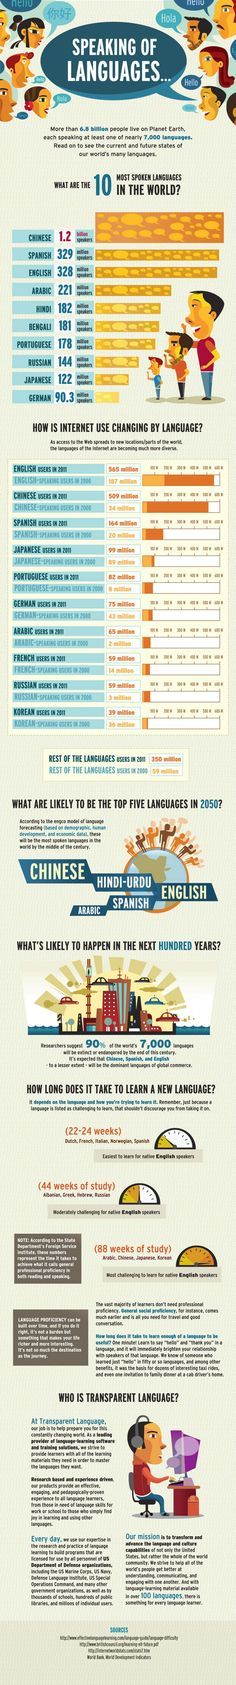 Speaking of Languages Infographic I don't think this info graphic is correct because it fails to account for non-native speakers of English. In India alone there are hundreds of millions of people who speak English and they don't seem to be accounted for. If it is assuming it's native language, then 1.2 billion Chinese is not accurate unless it is looping all dialects in, which are essentially different languages.